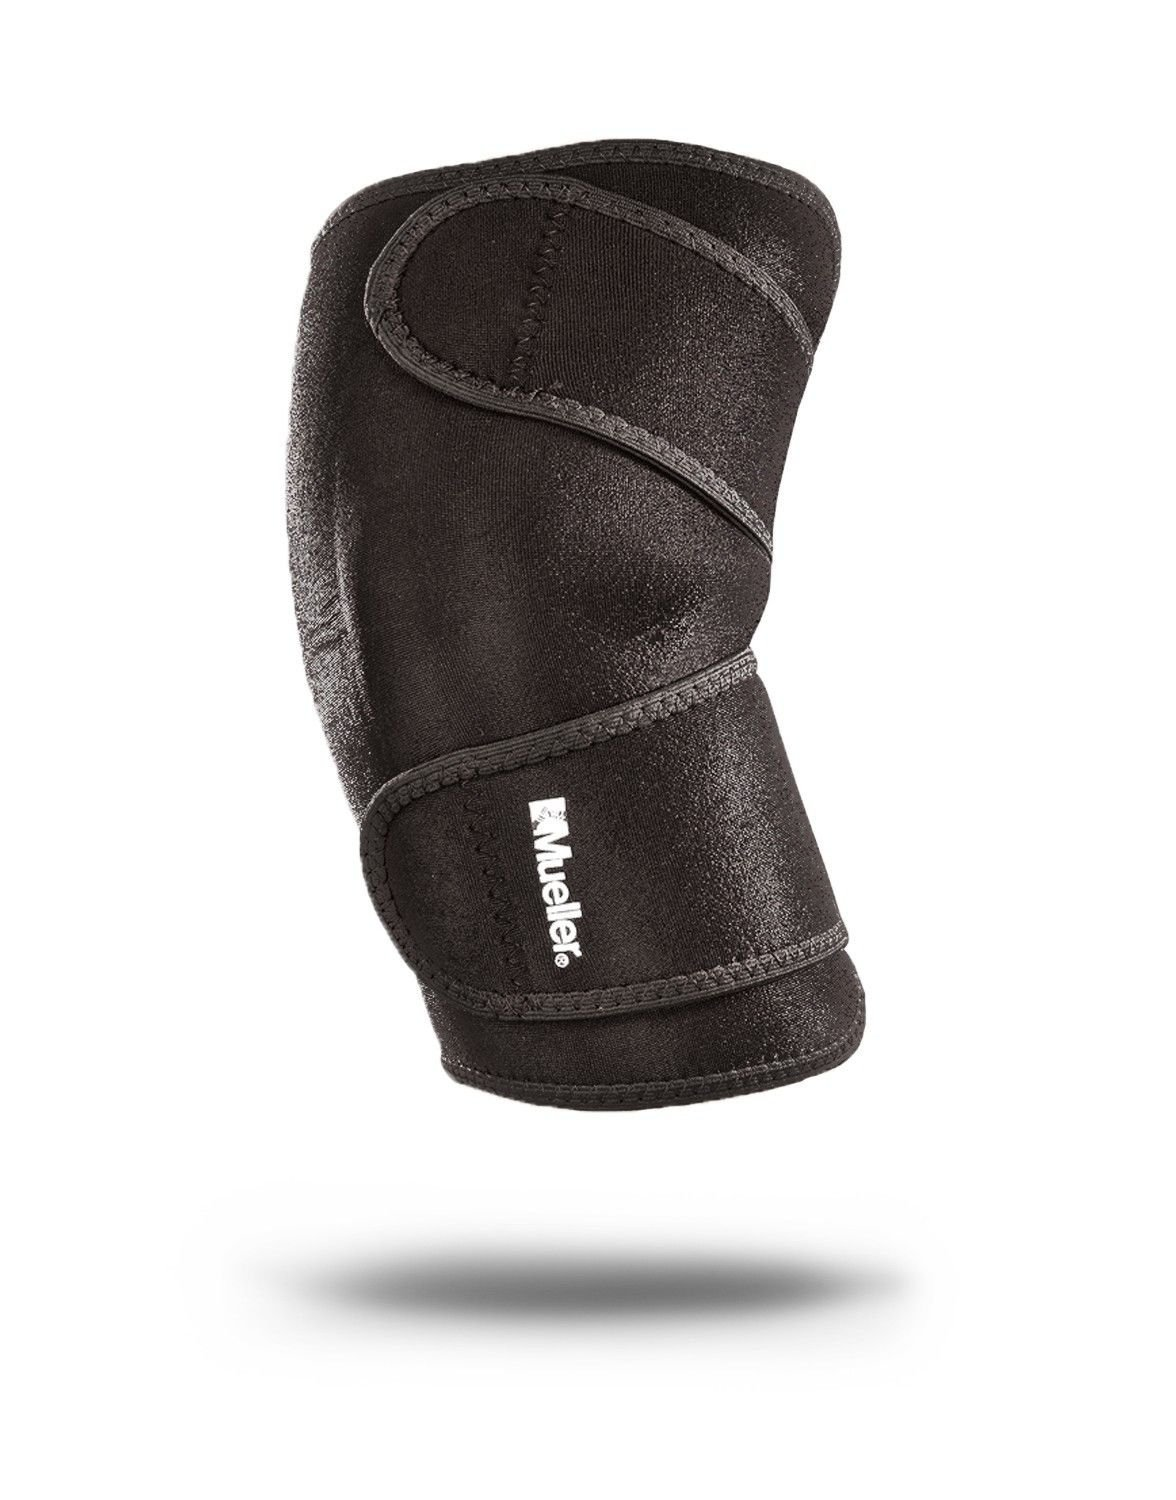 2dfd905f94 Amazon.com: Mueller Sports Medicine Closed Patella Wraparound Knee Brace  Support One Size: Kitchen & Dining